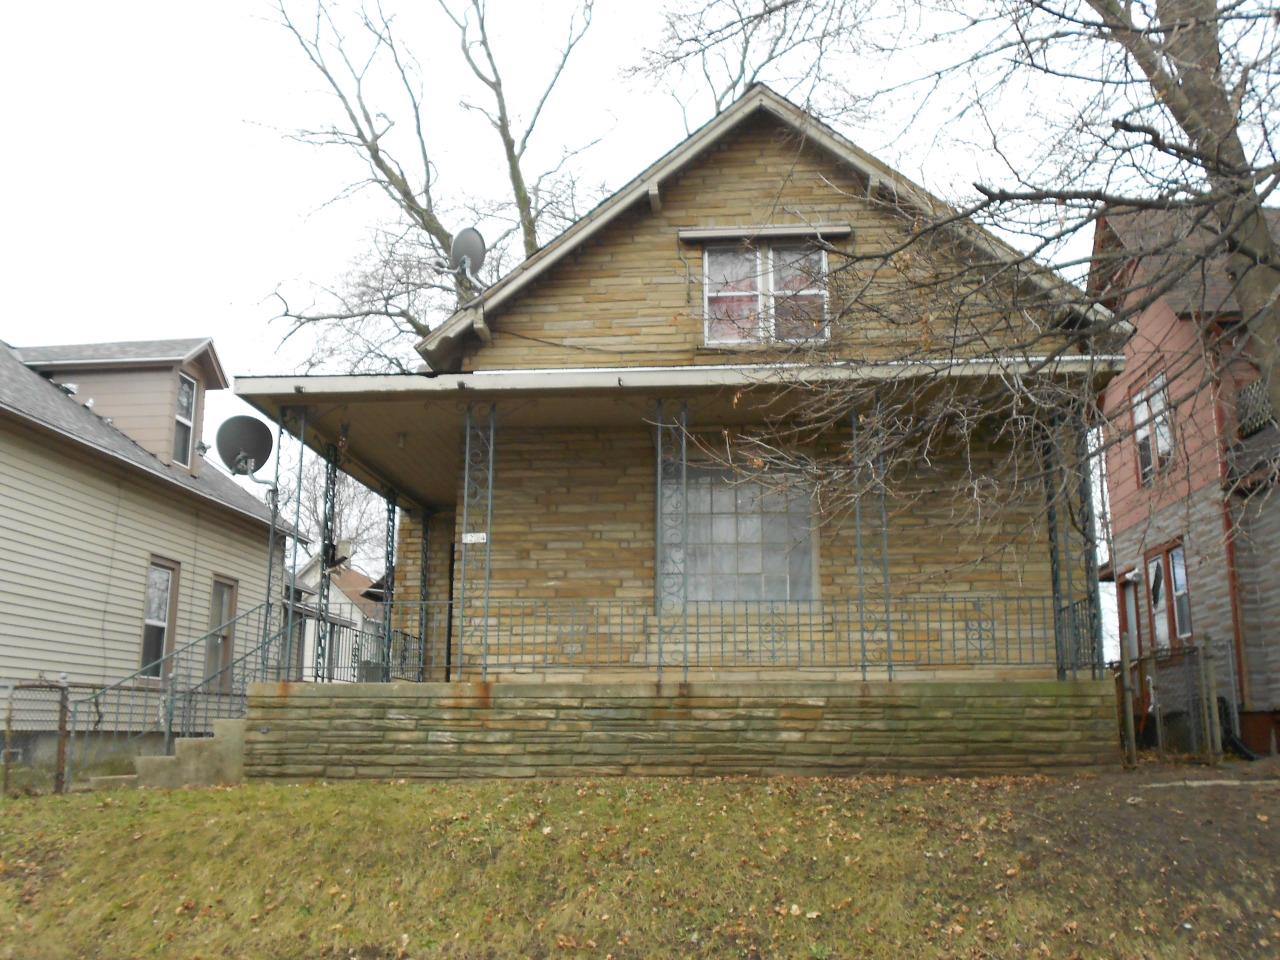 Move in ready 3 bedroom 2 bath home with lots of possibilities of a 4th bedroom or bonus rooms with off street parking.